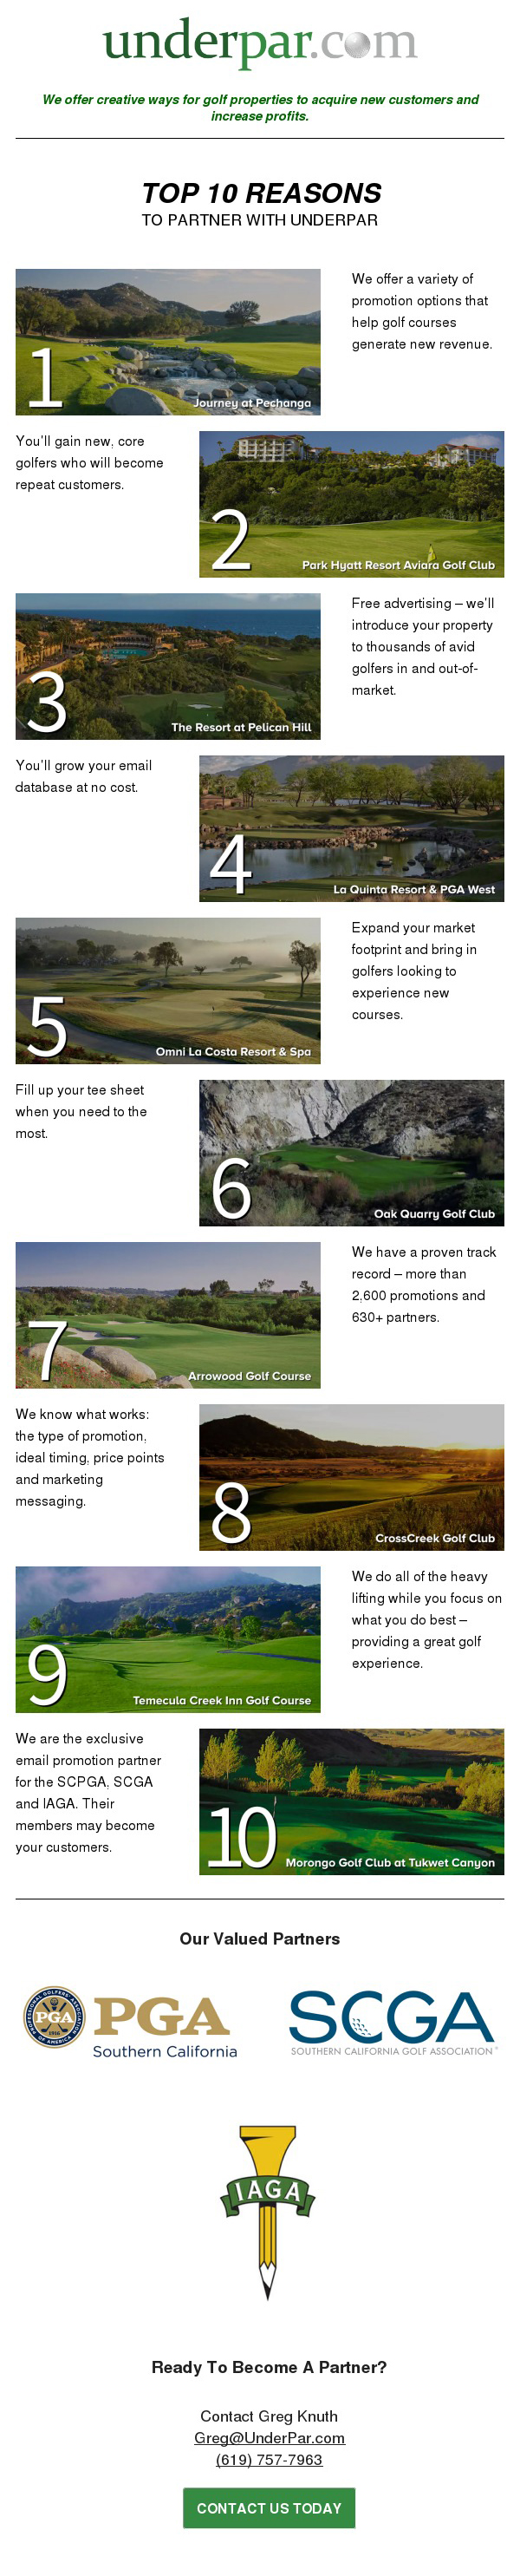 Top 10 Reasons To Partner With UnderPar